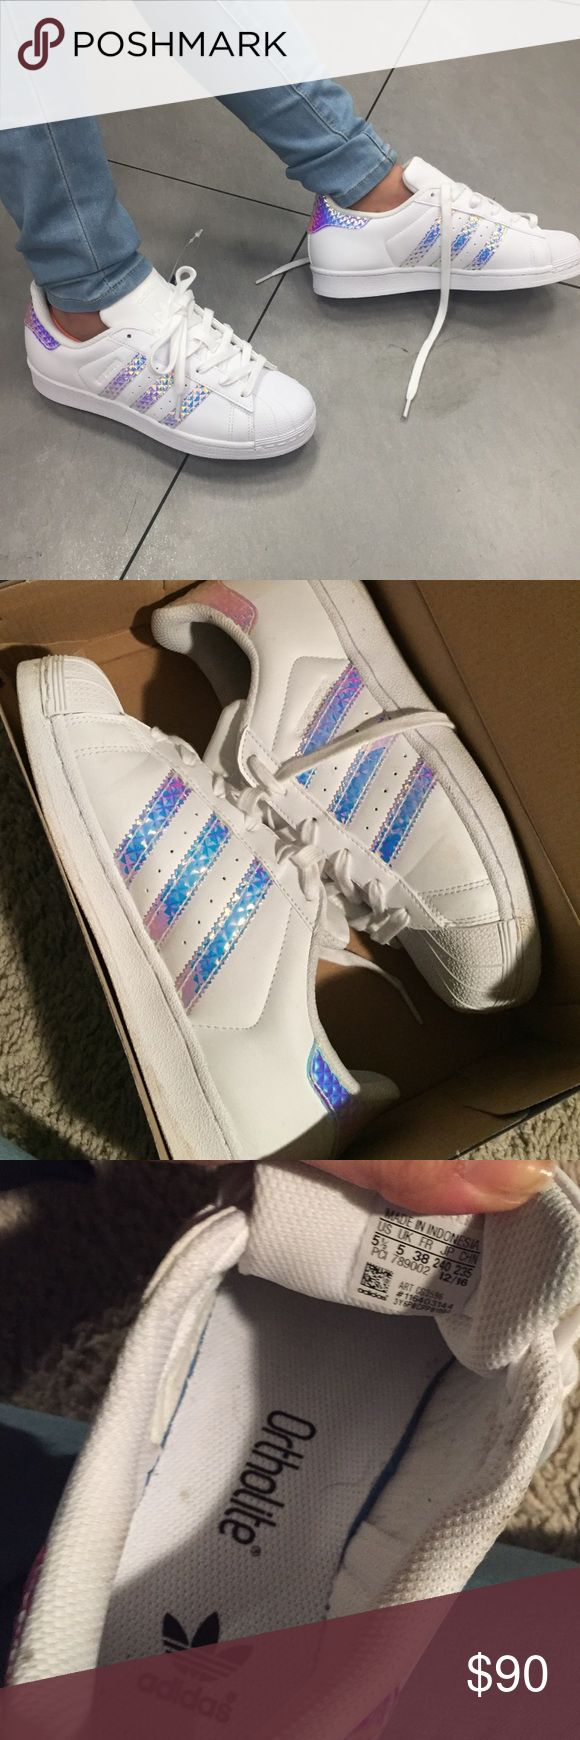 Holographic Adidas I wore these once for a sadies date Adidas Shoes